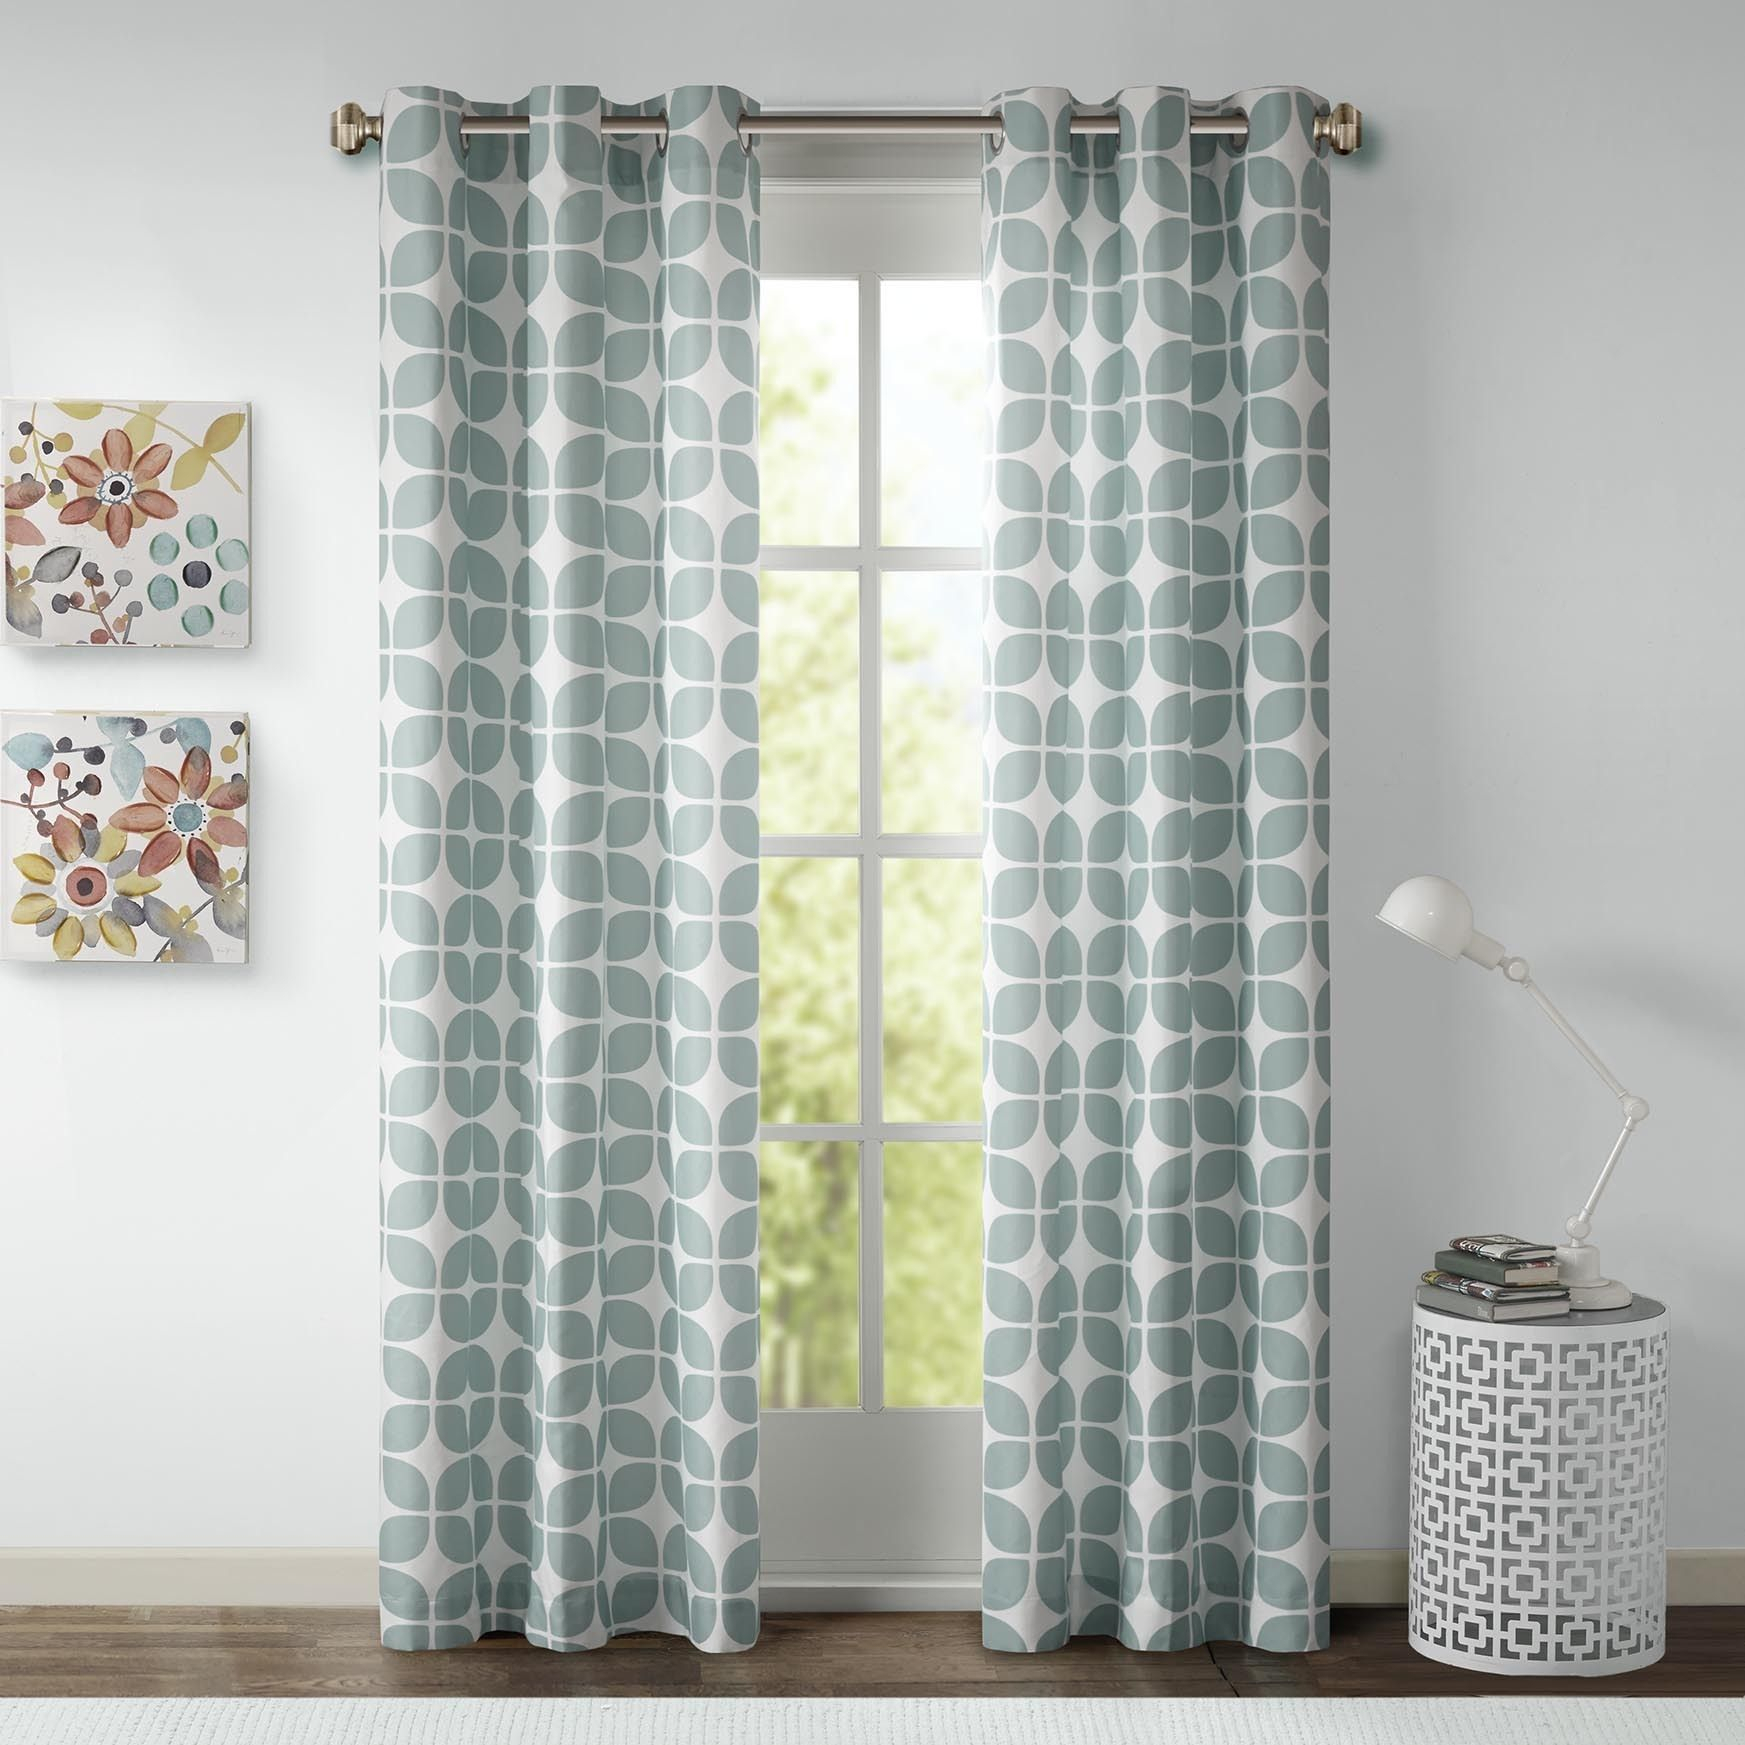 This Geometric Printed Panel Pair Is The Perfect Modern Intended For Essentials Almaden Fretwork Printed Grommet Top Curtain Panel Pairs (View 13 of 20)